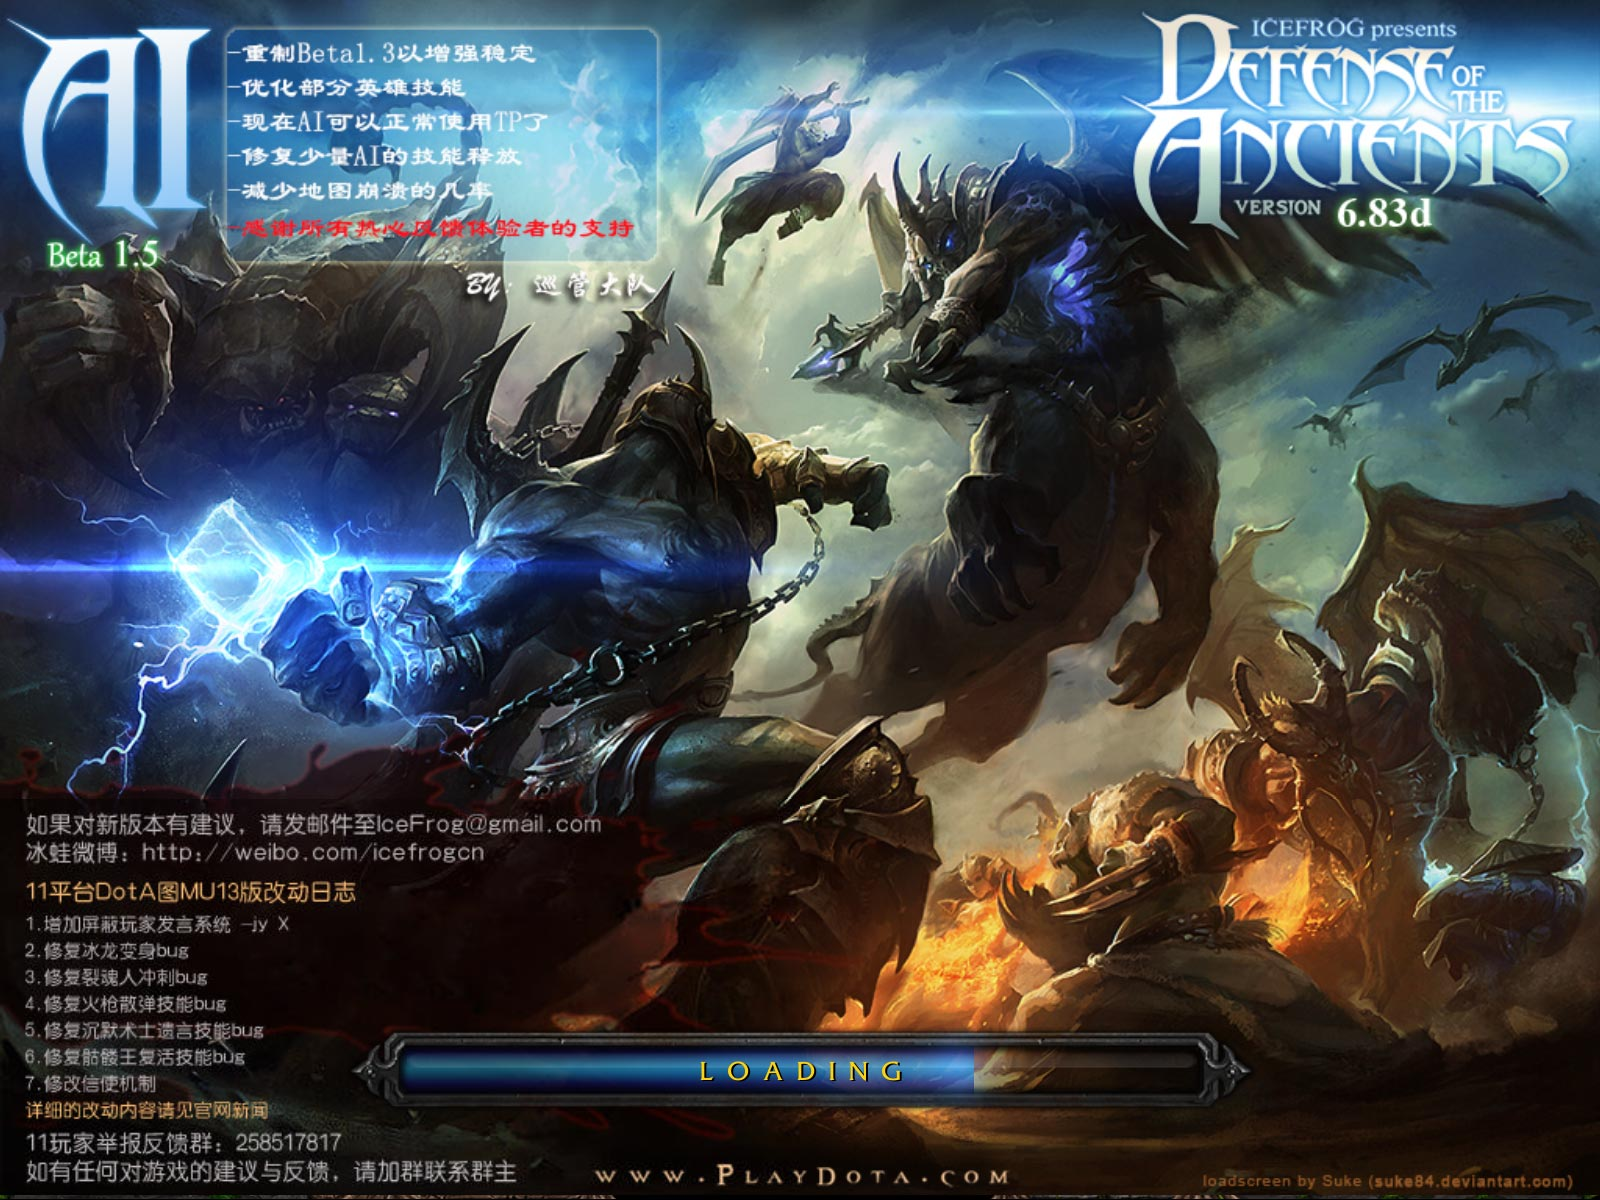 Dota Allstars Ai Loading Screen 6.83d